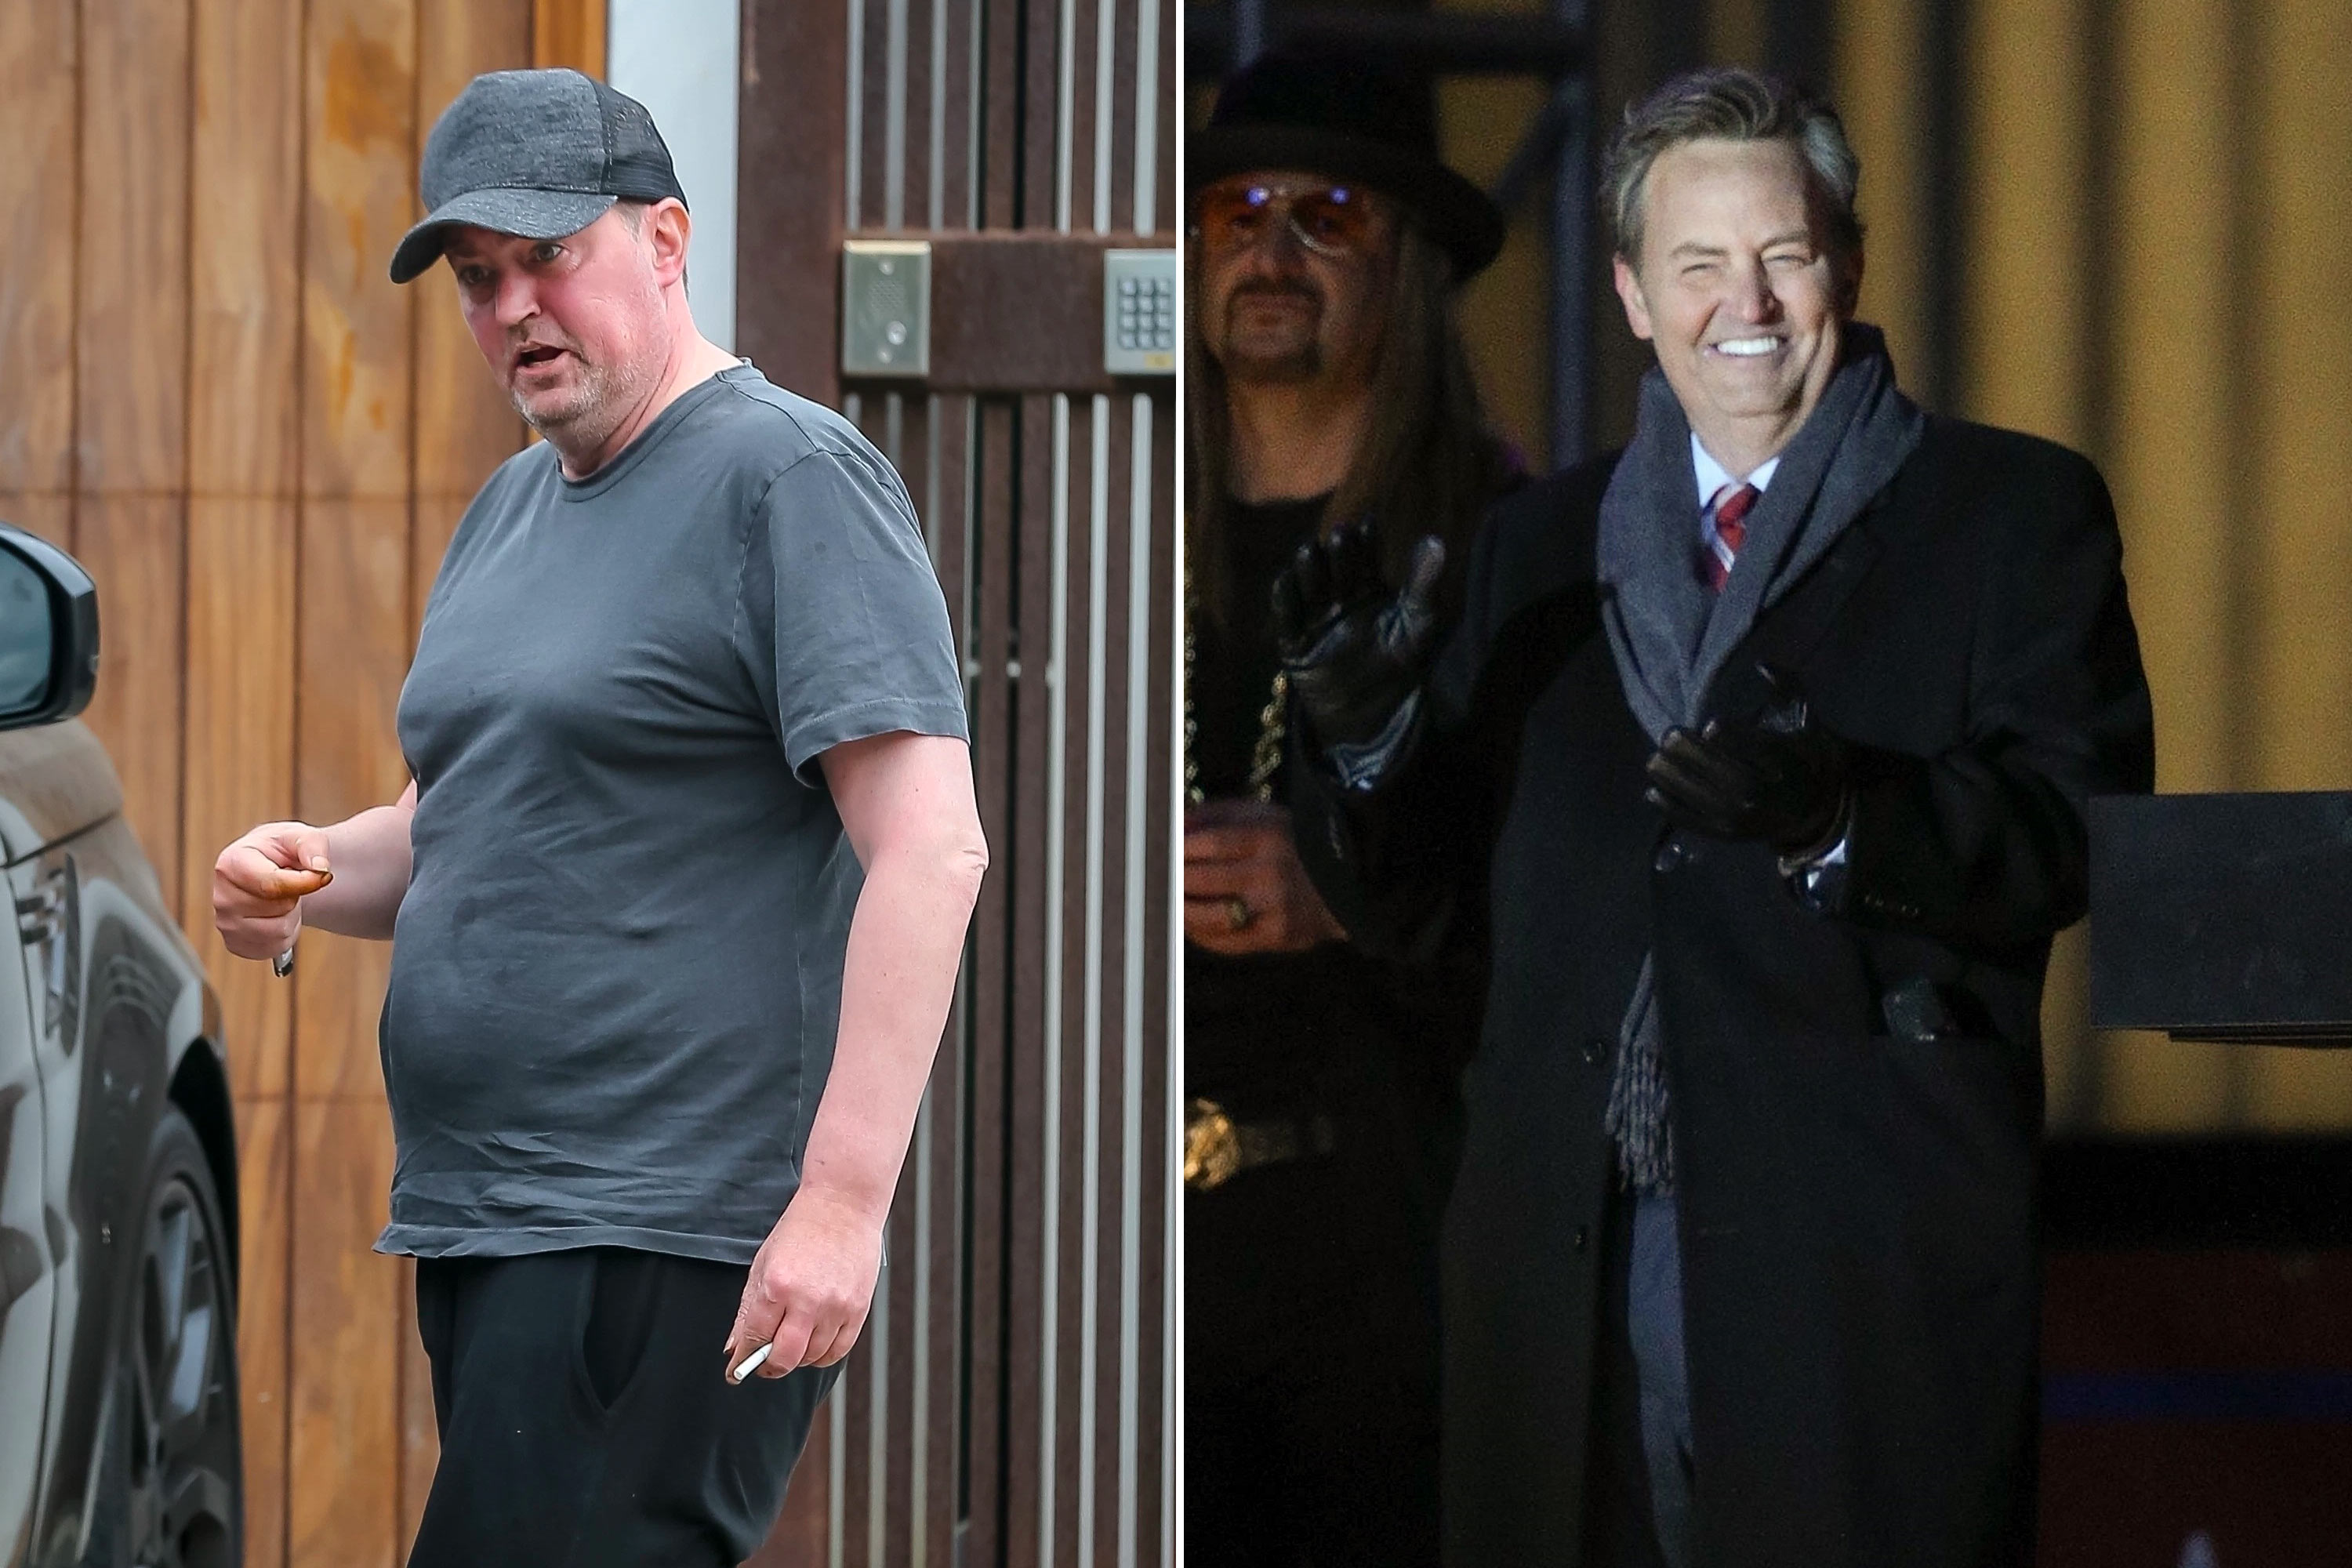 Matthew Perry appears healthy on movie set after engagement